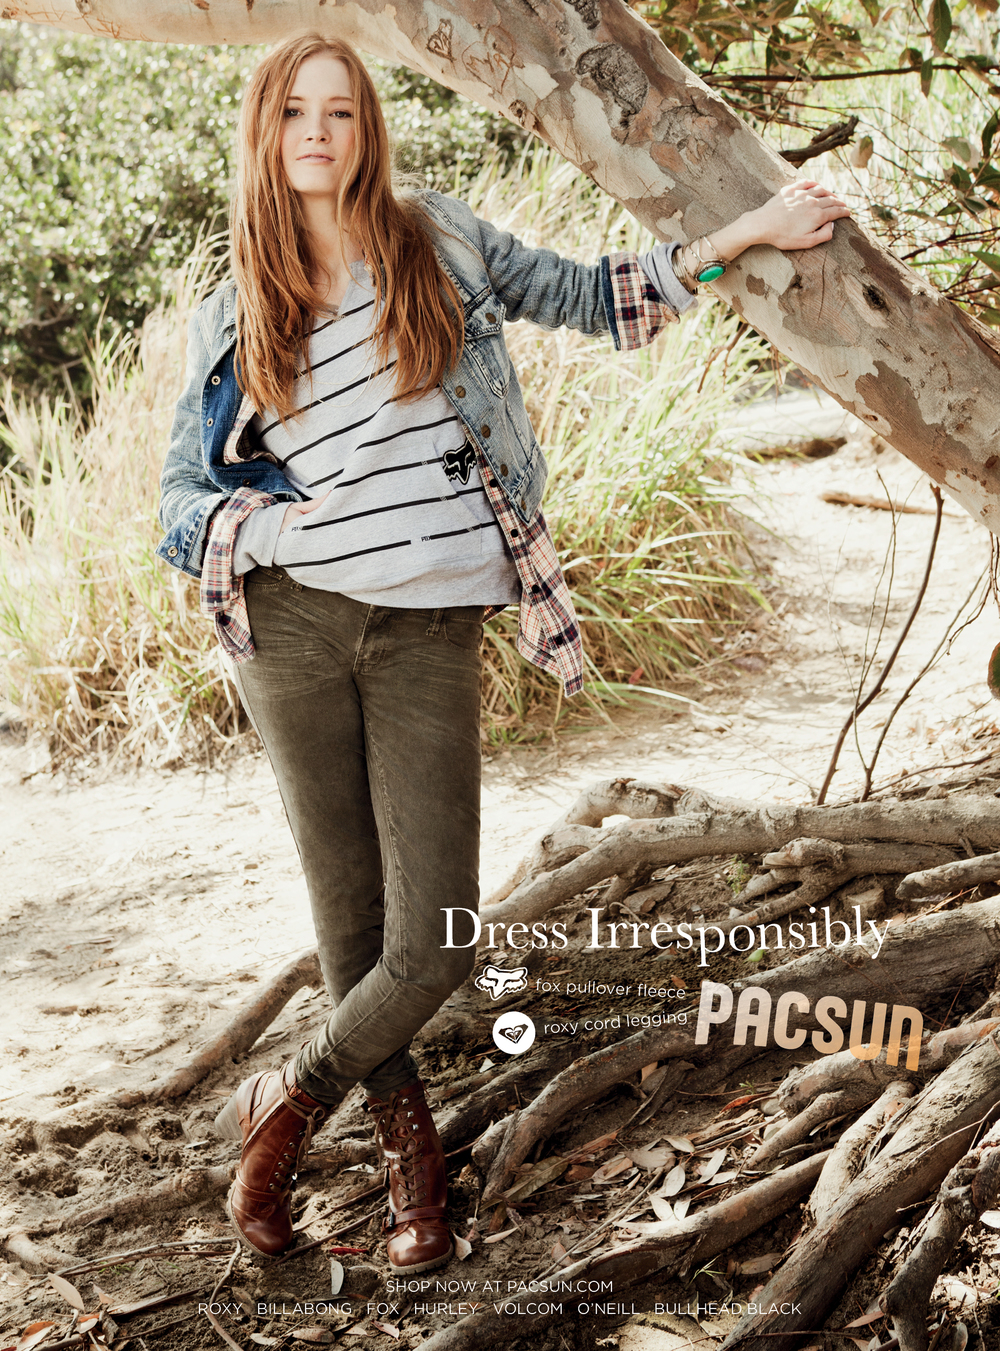 986_PacSun_GirlInTree_TeenVogue070111_X1A.jpg